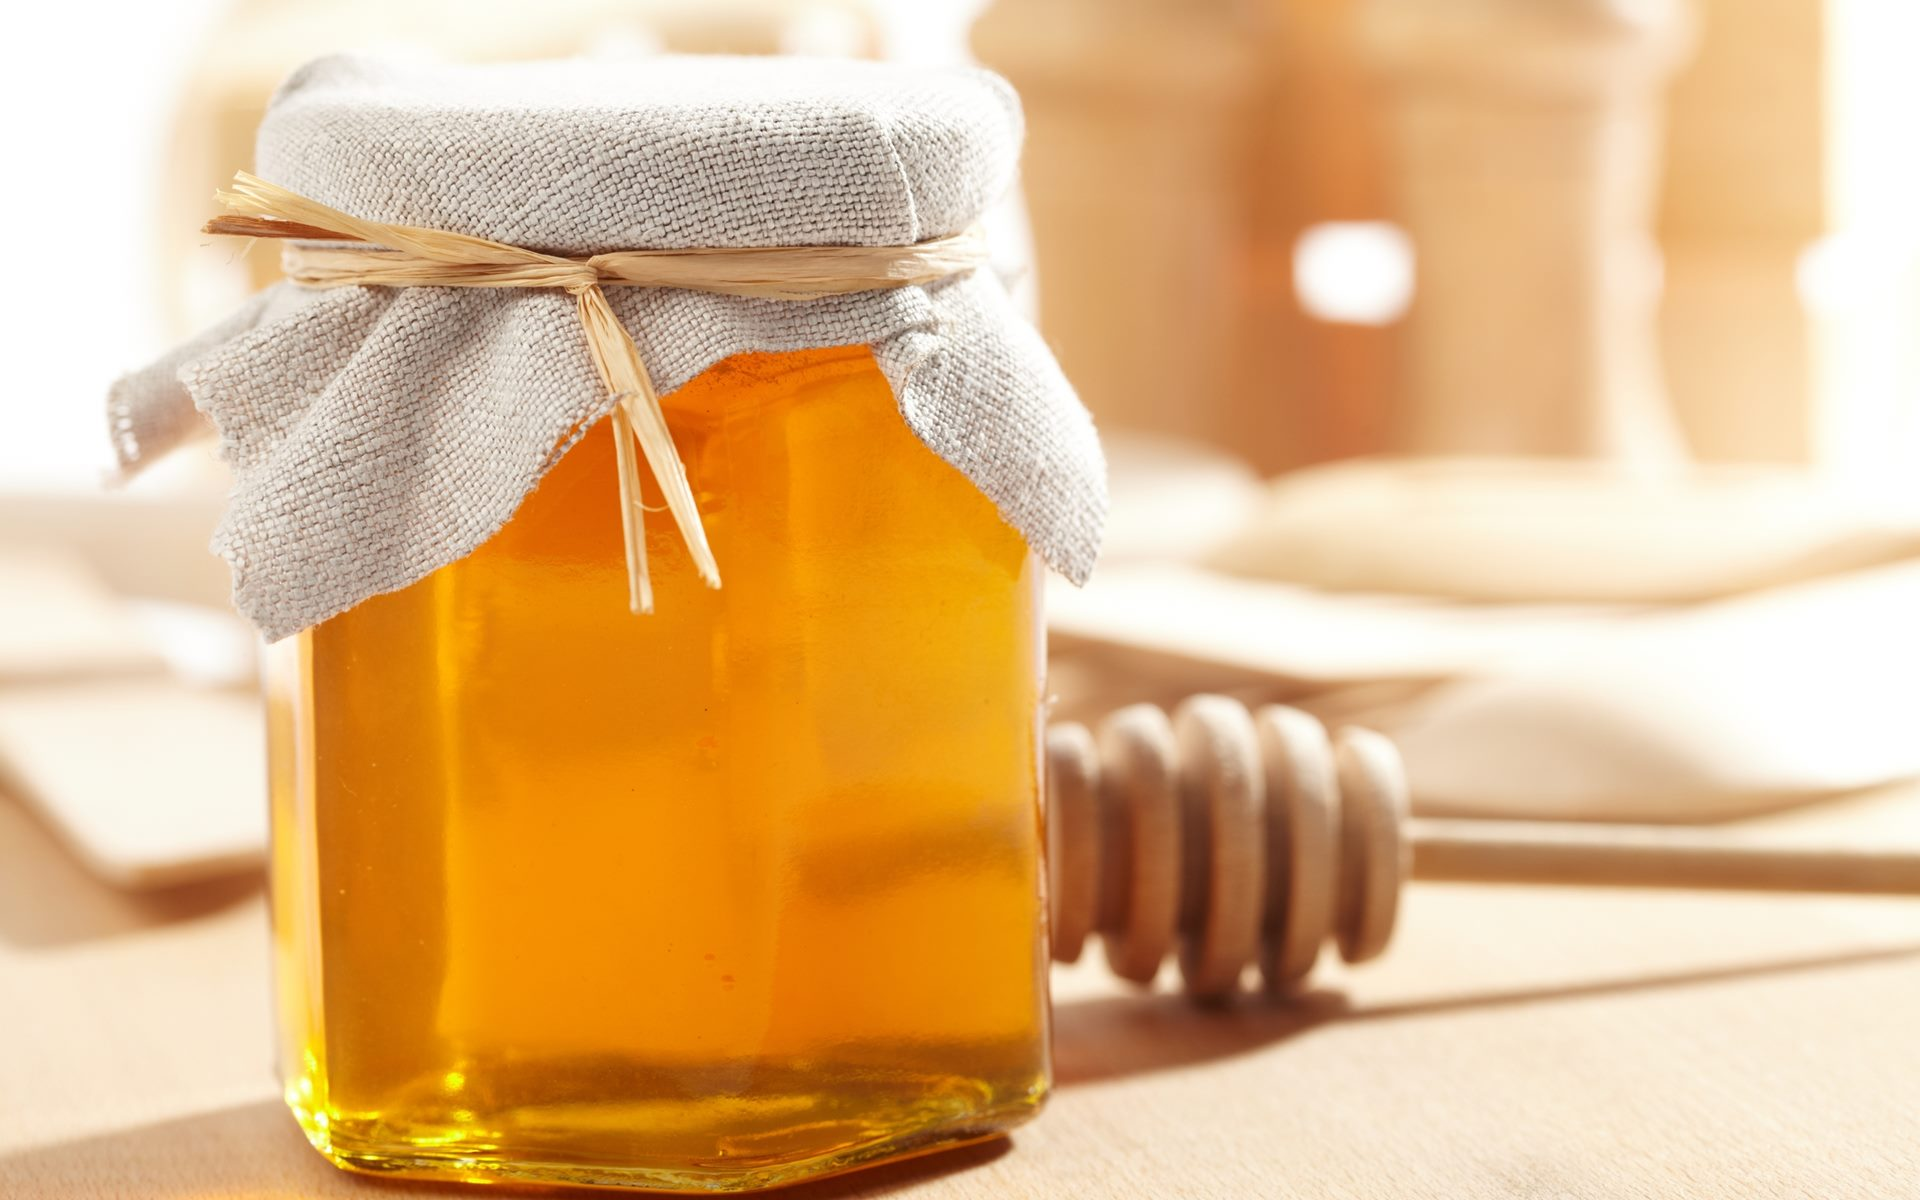 Tastey Honey Jar Wallpaper Images Picture And Hd Pictures Download